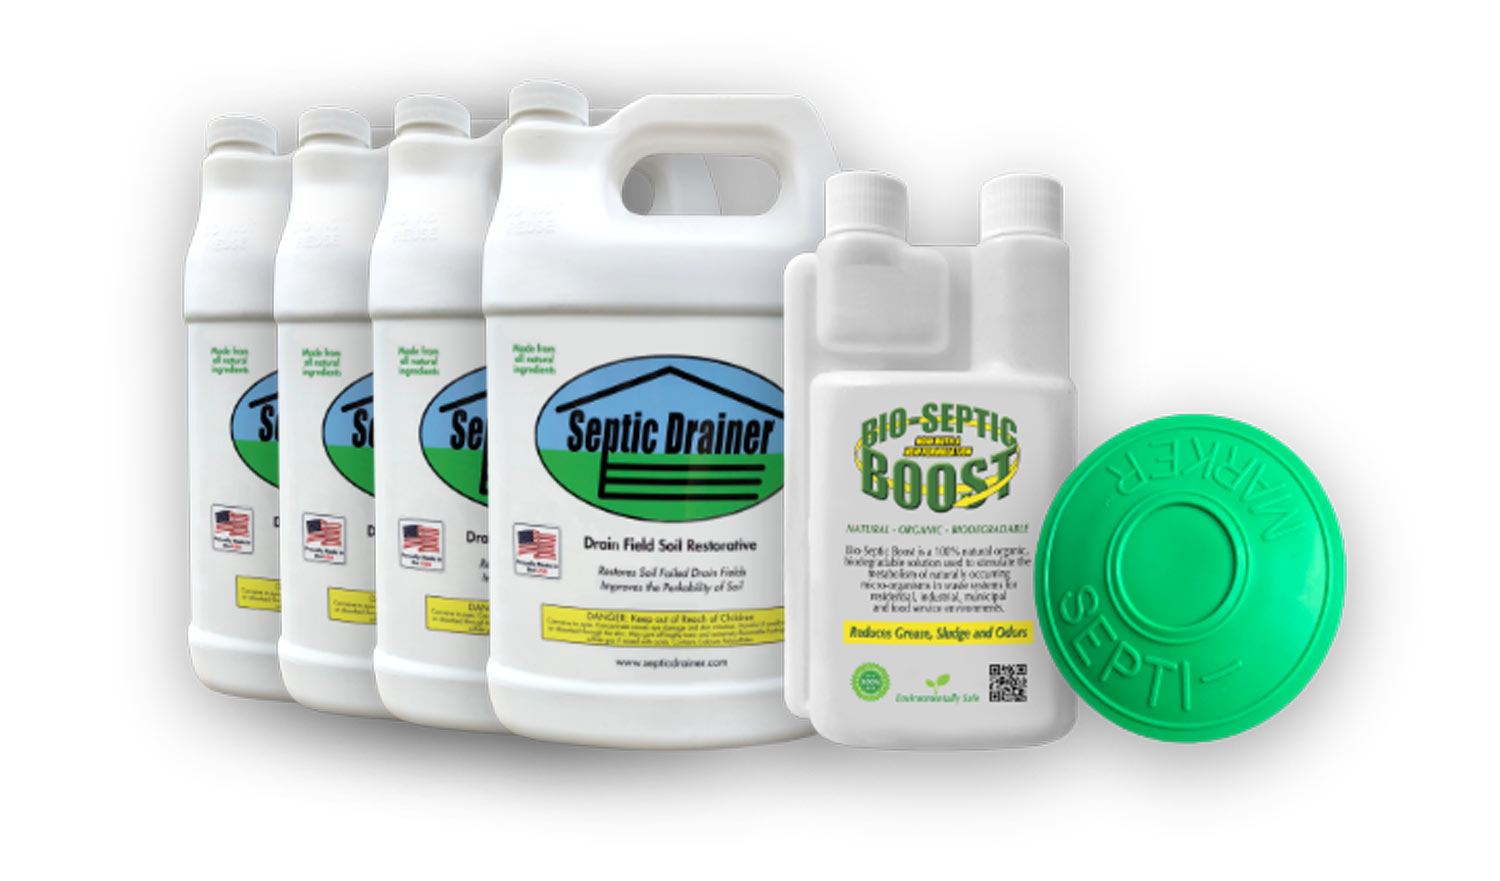 Septic Drainer Full Product Line